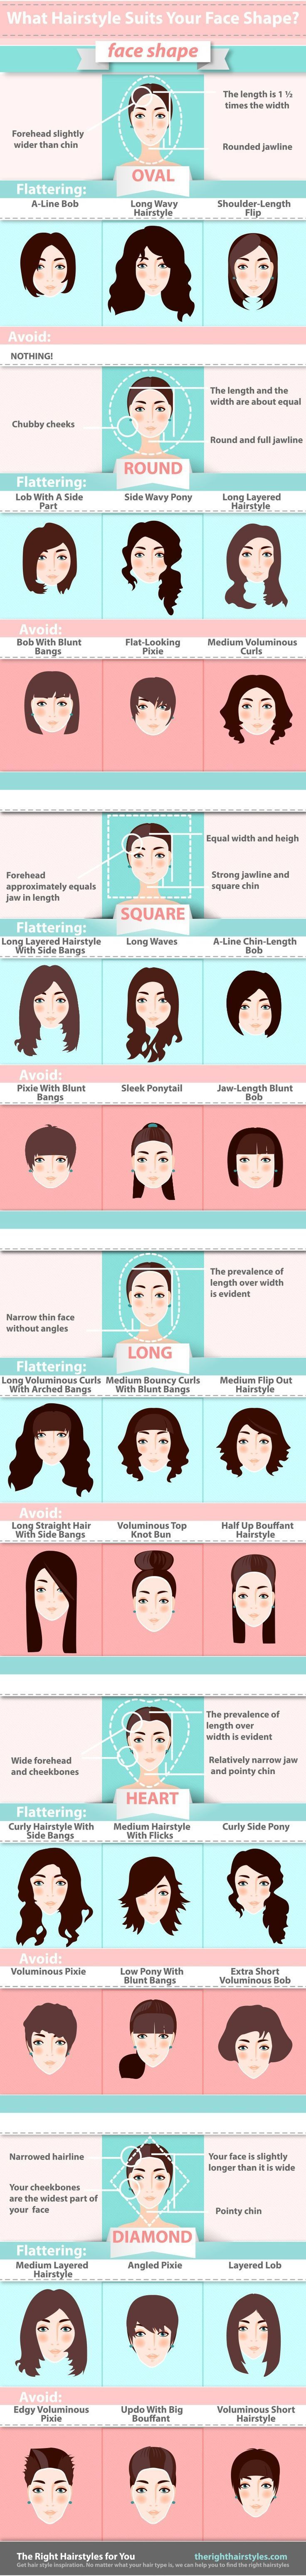 Guide: The Perfect Hairstyle For Your Face Shape | Best Beauty Tips And Fashion Ideas For Women by Makeup Tutorials at makeuptutorials.c...